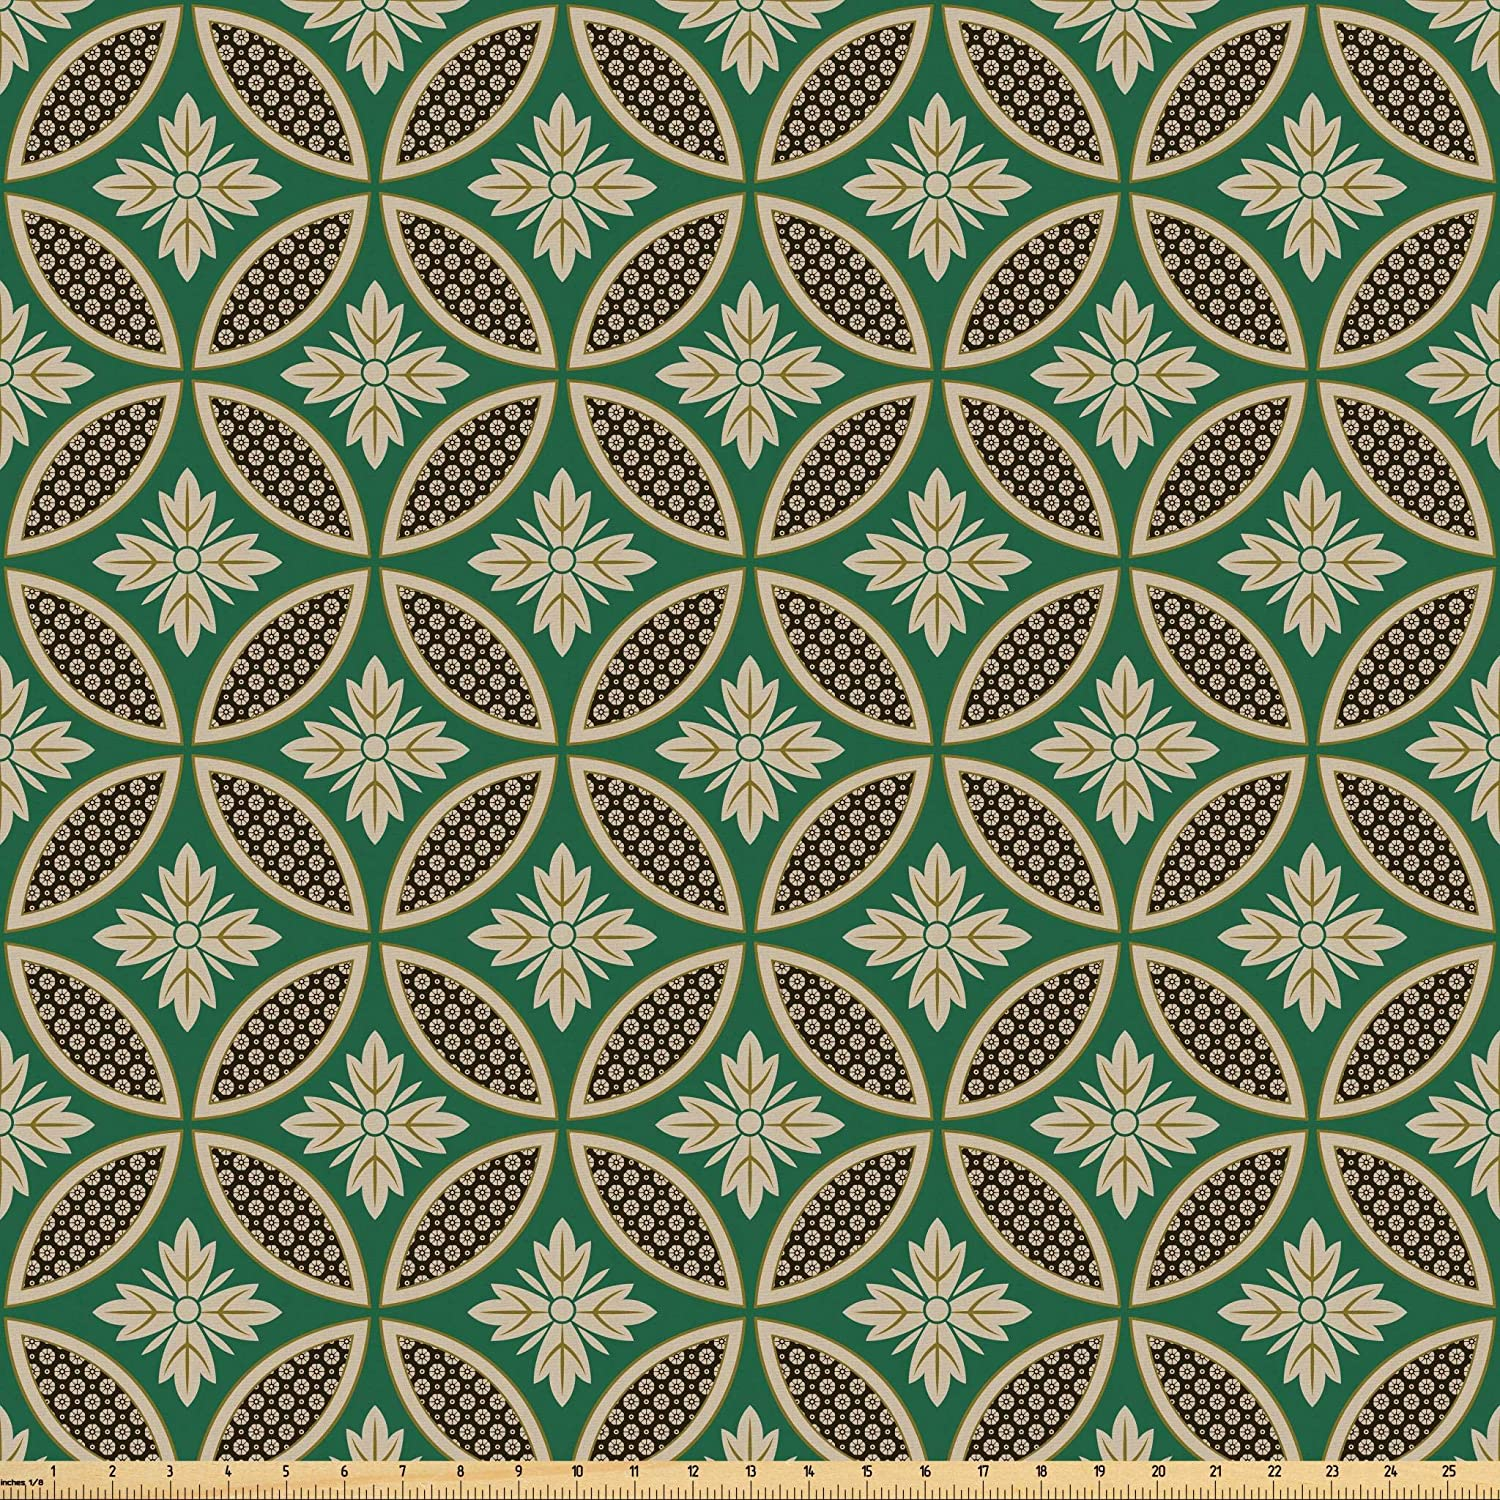 Lunarable Green Oriental Fabric by The Yard, Interlocking Ornamental Mosaic Tiles Petals Circular Shapes, Microfiber Fabric for Arts and Crafts Textiles & Decor, 2 Yards, Jade Green Beige and Black